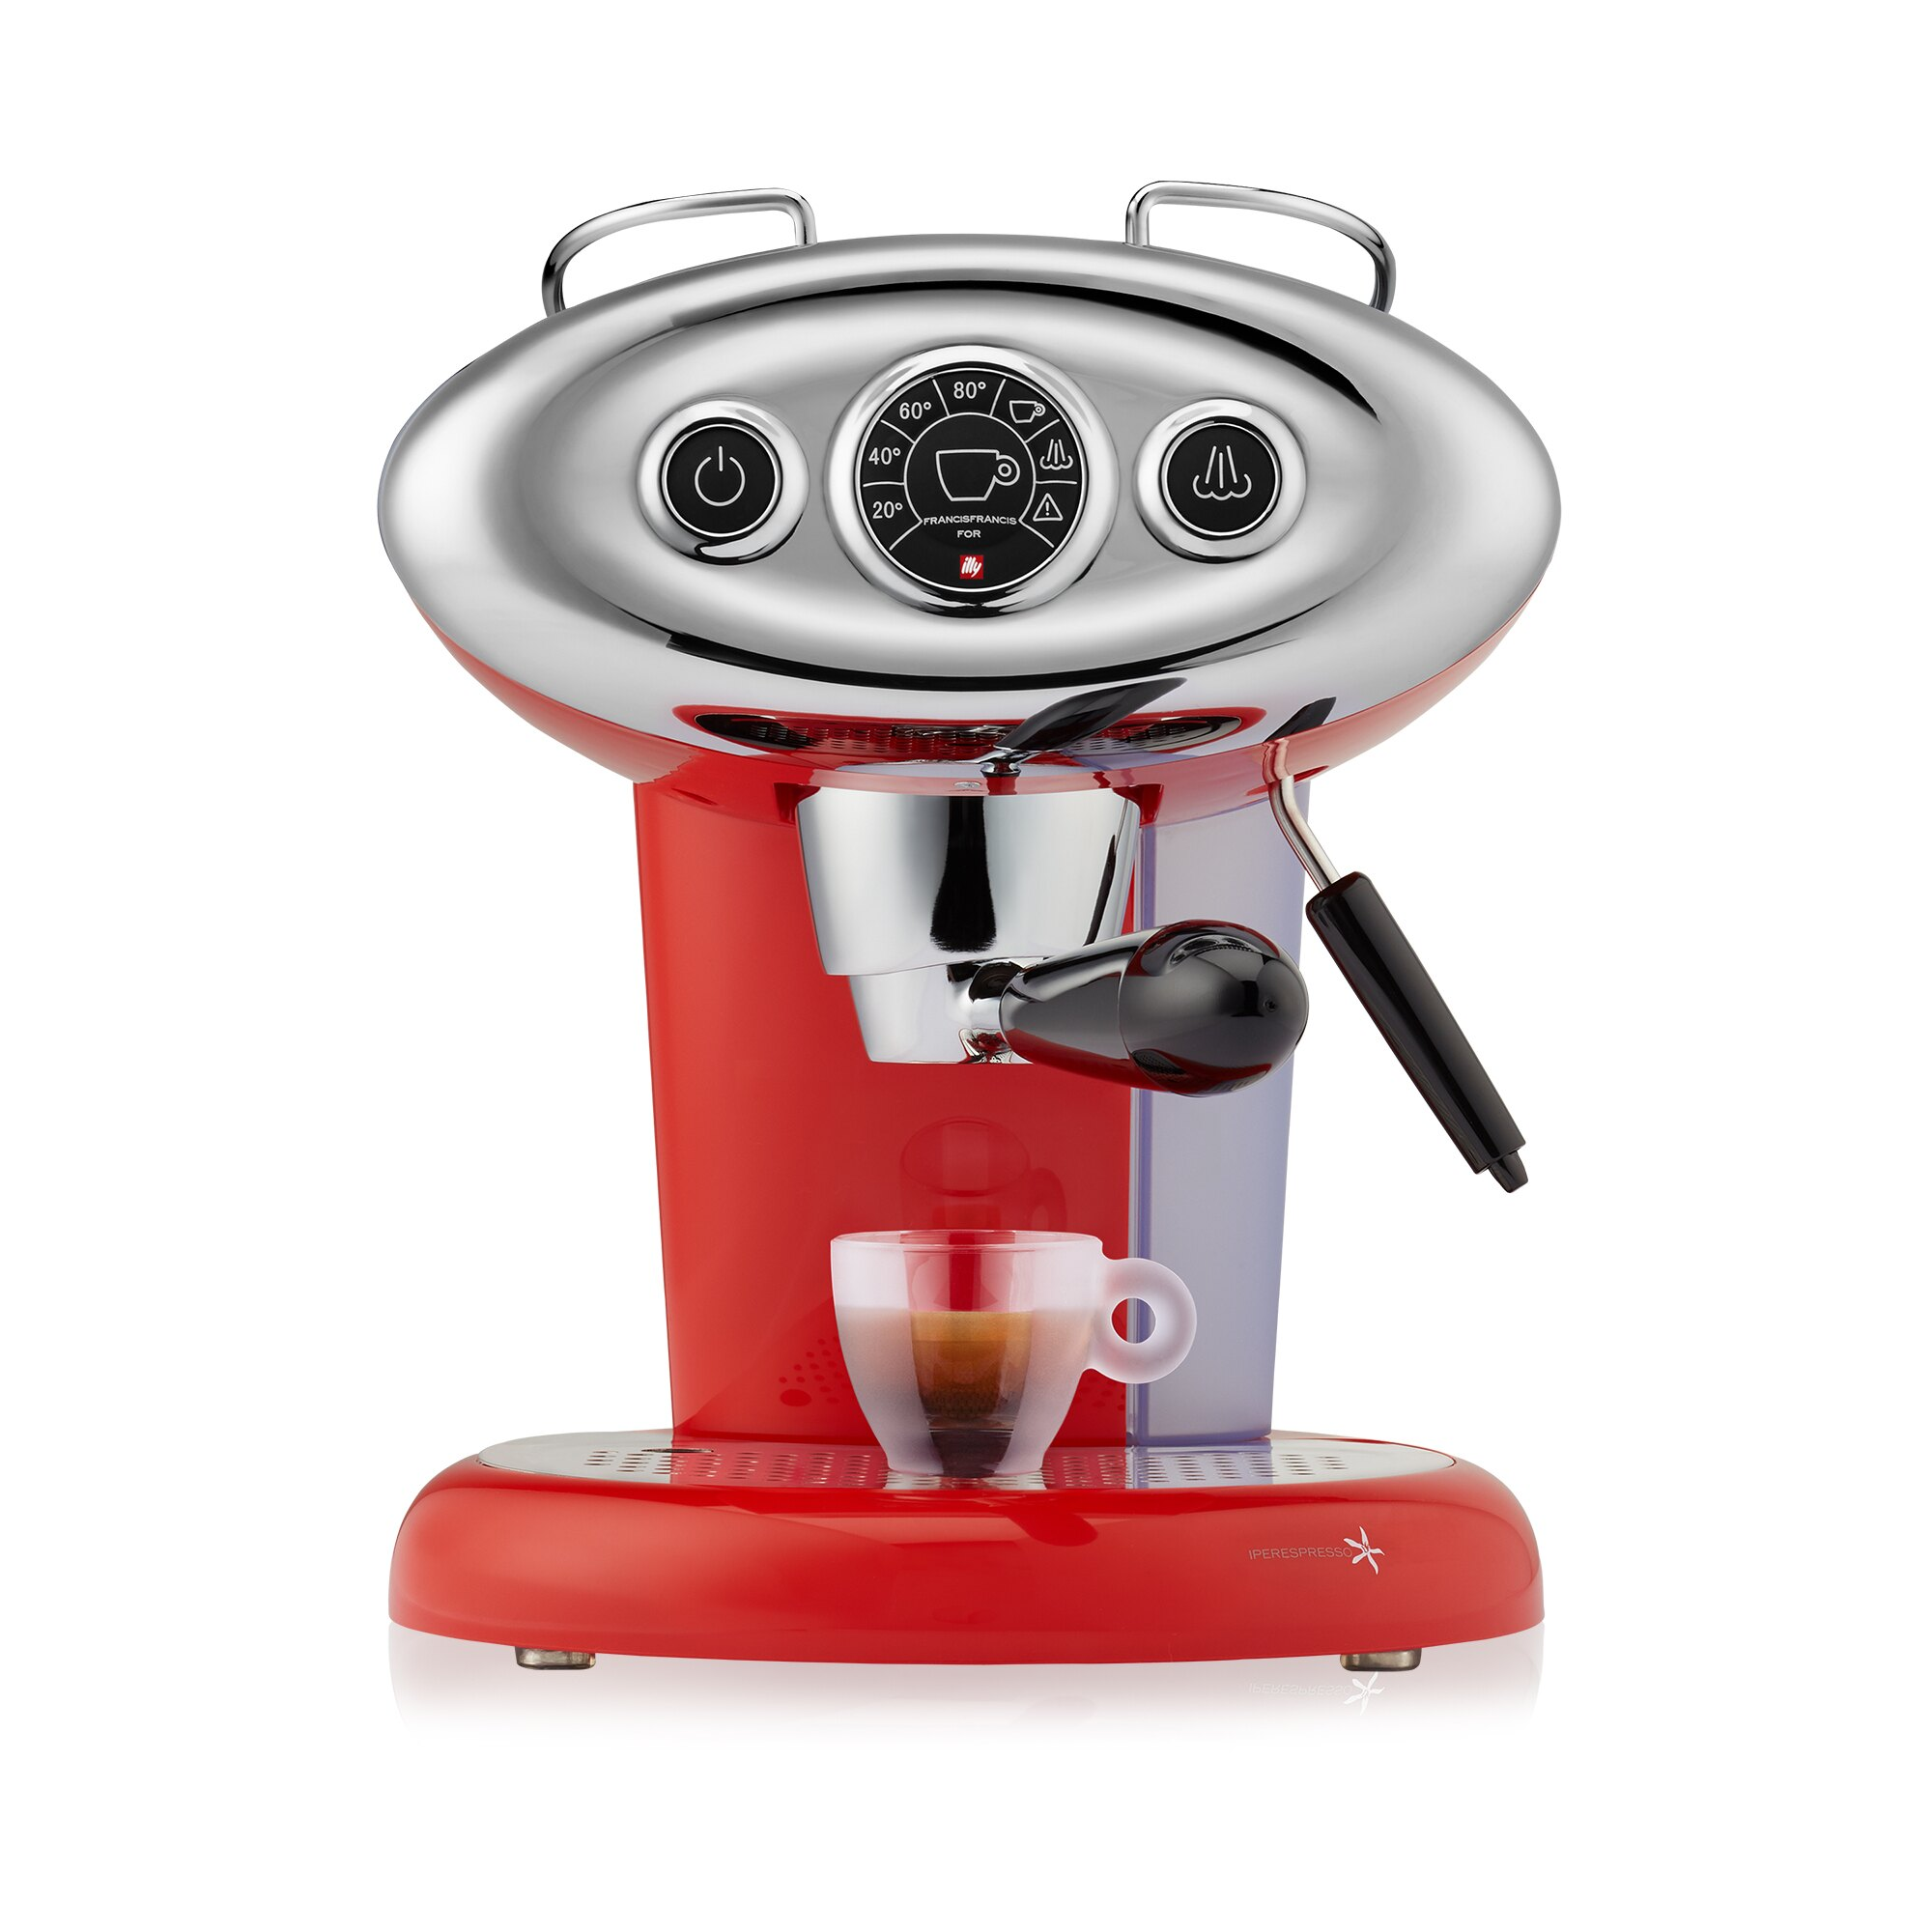 illy coffee Make extraordinary espresso and freshly brewed coffee at the touch of a button with this cuisinart espresso and coffee machinegift givers: this item ships.